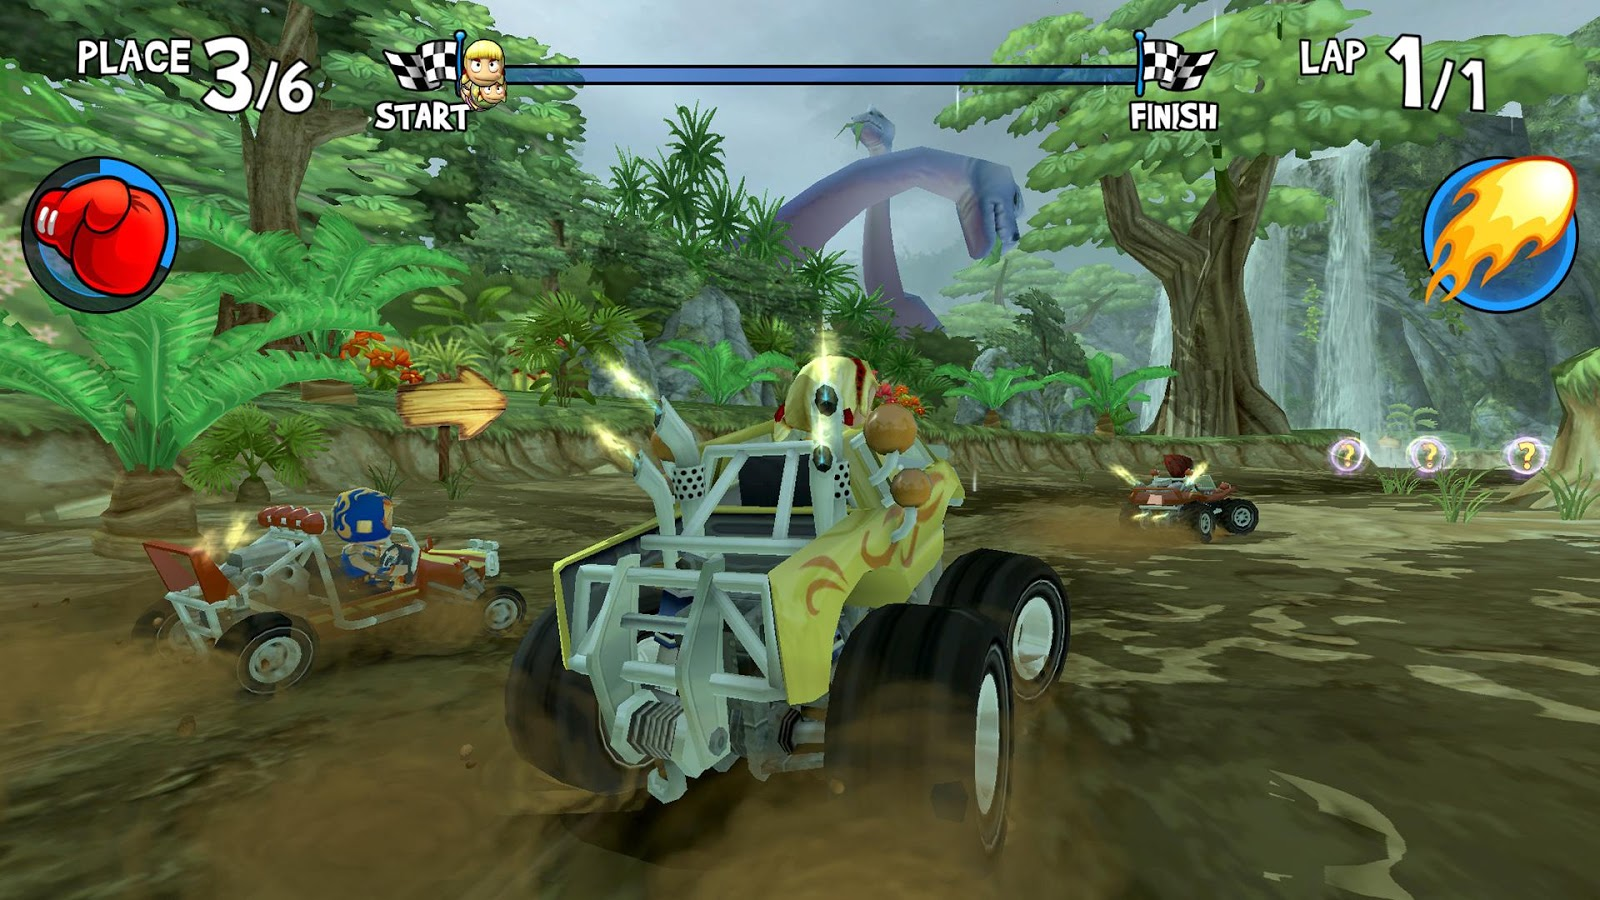 لعبة السيارات Beach Buggy Racing mOzMkBGTOwlZr_r_5Rtm